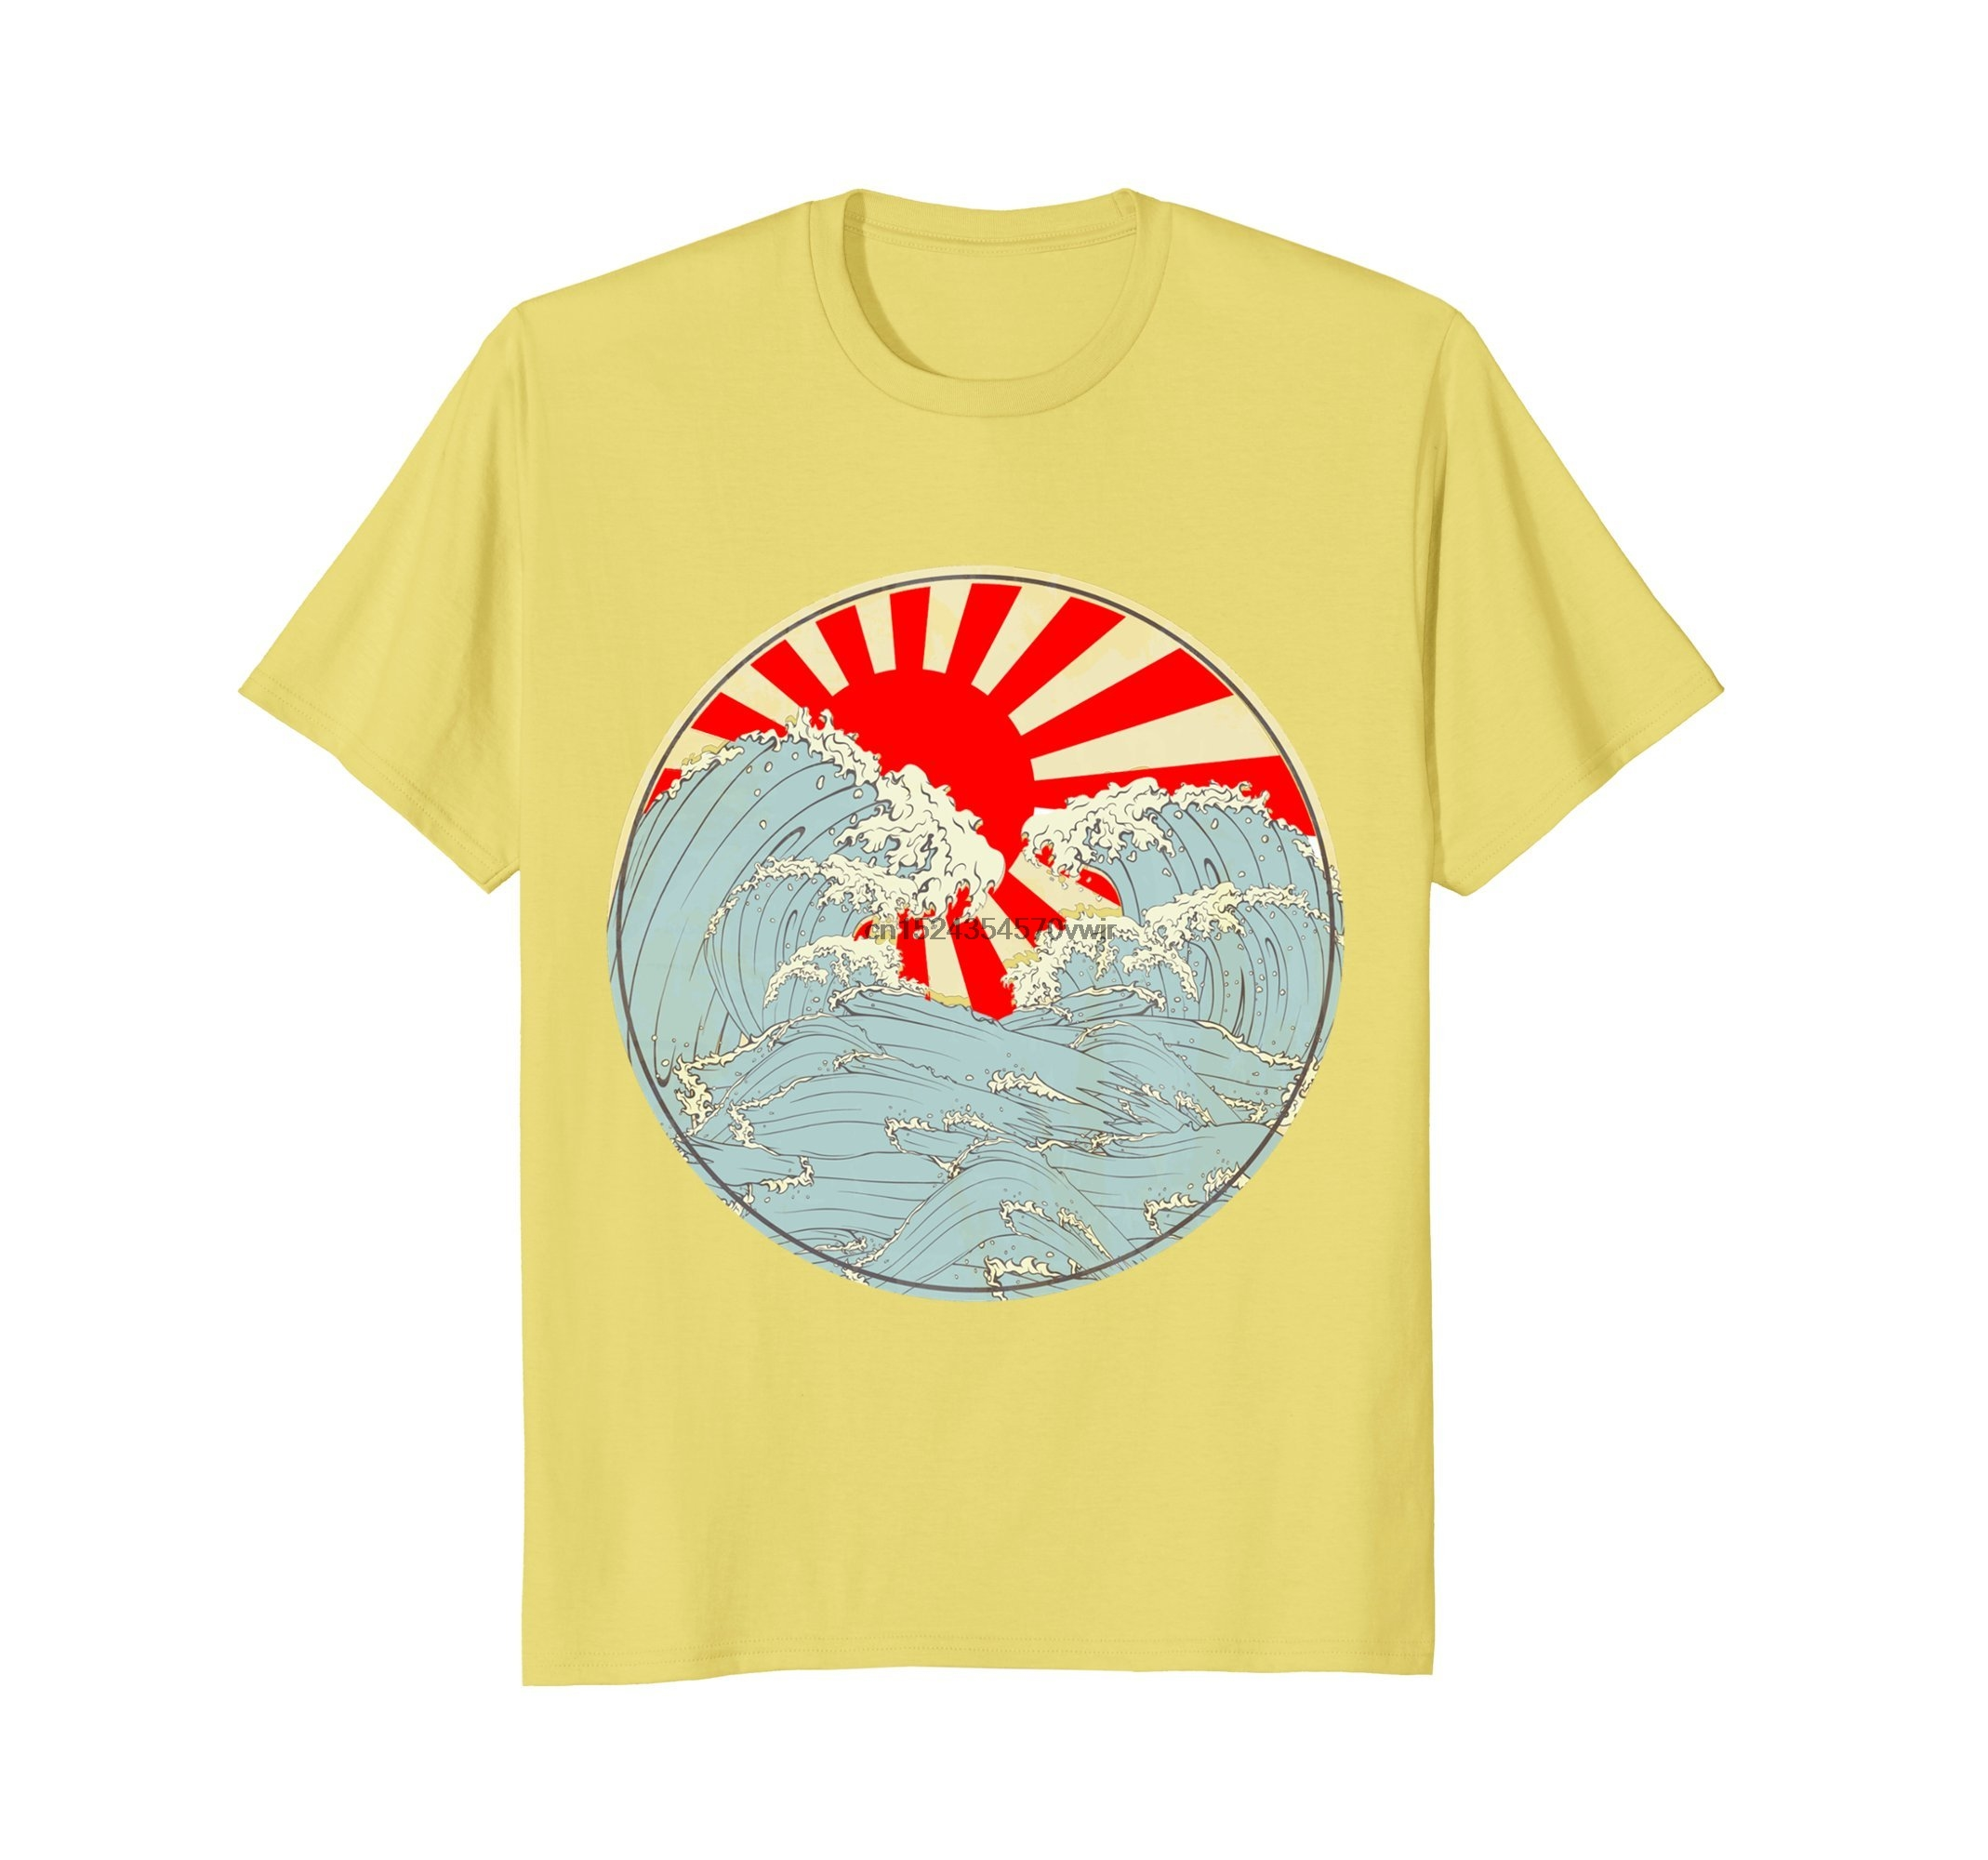 c1599848a14 Japanese T Shirt The Great Wave off Kanagawa Vintage Art-in T-Shirts from  Men s Clothing on Aliexpress.com